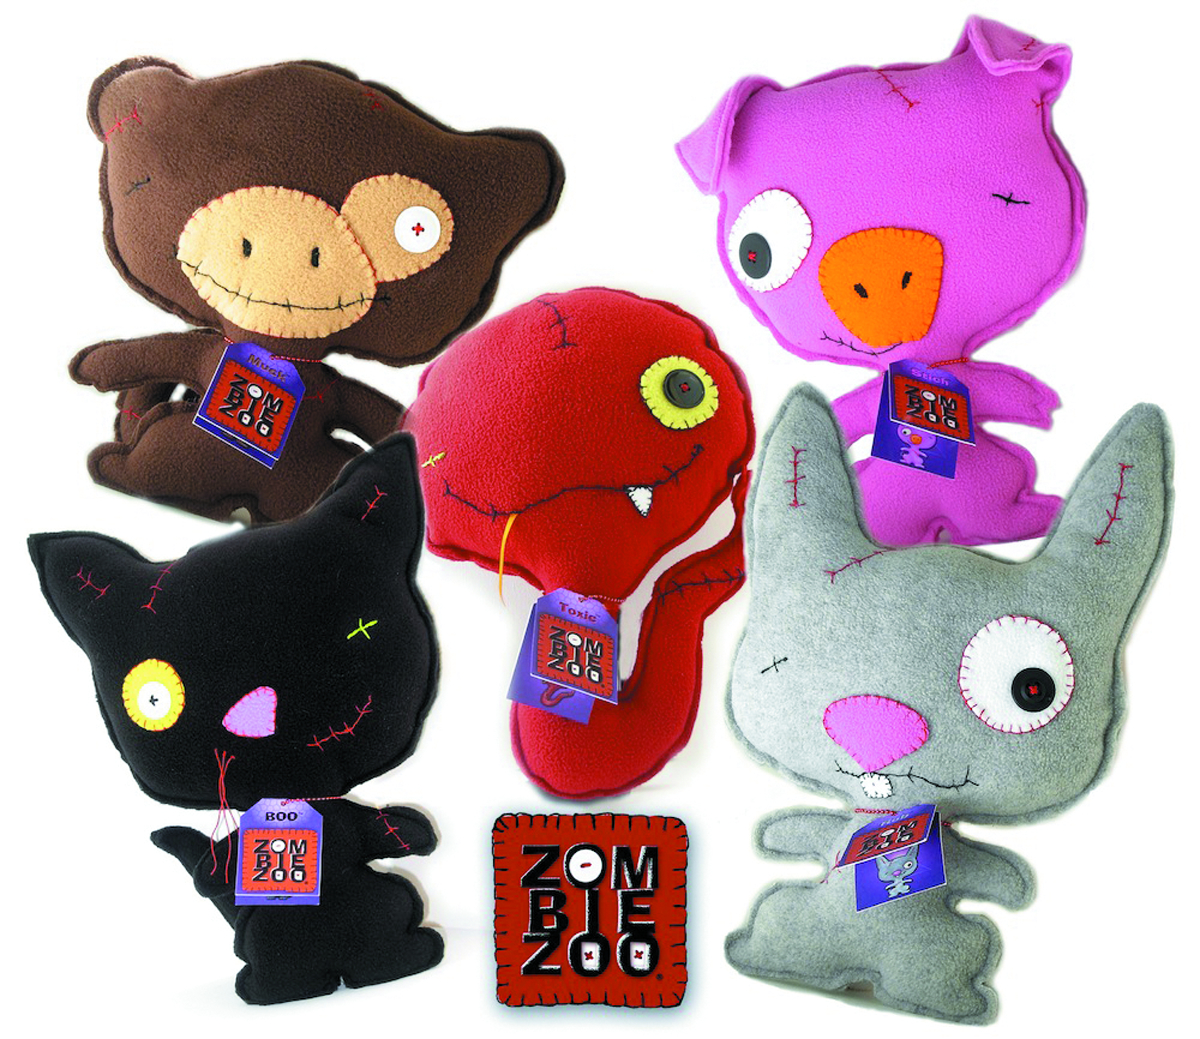 ZOMBIE ZOO 13IN TOXIC CLASSIC PLUSH